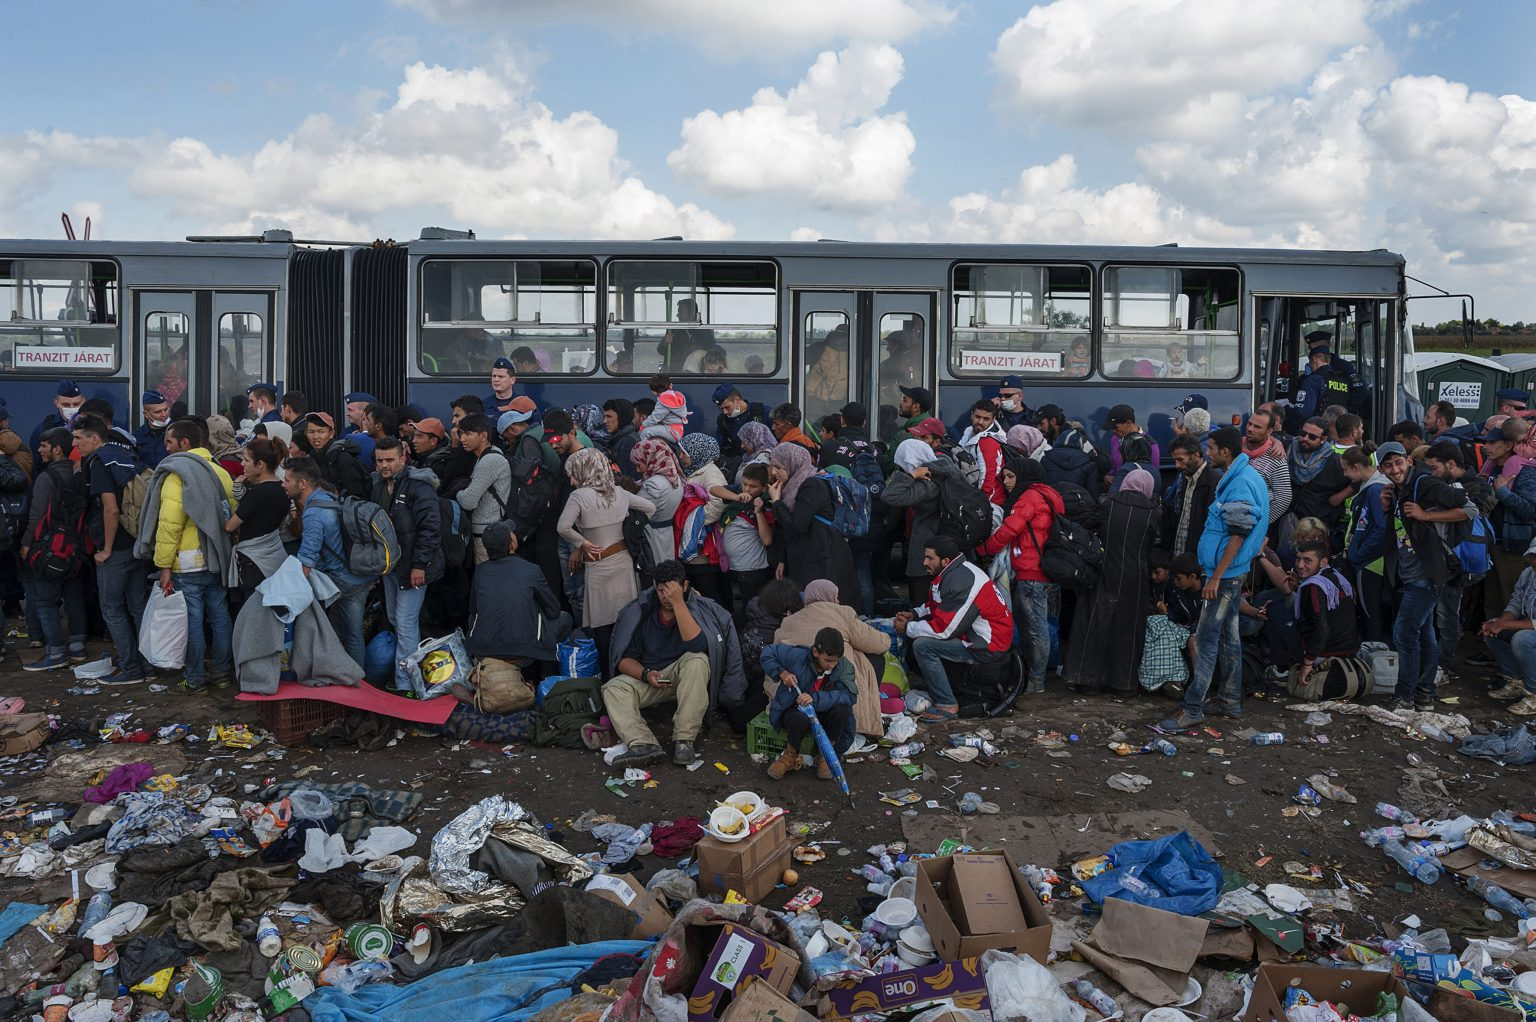 Roszke, Hungary,  September 12th 2015 - Refugees just arrived from Serbia waiting in line in order to be taken by bus to the refugee camp managed by the Hungarian government, where they will be registered and fingerprinted.      ------         The Hungarian government stated within September 15th the border definitively will be closed, in order to stop the flux of refugees coming from Serbia. According to surveys, during the day of September the 12th more than 4,000 people crossed the border between the two countries.    ><      Röszke, Ungheria, 12 settembre 2015 - Profughi appena arrivati dalla Serbia in coda in attesa di essere portati con un autobus nel campo profughi gestito dal governo ungherese, dove saranno registrati e schedati.              -------------              Il governo ungherese ha dichiarato che entro il 15 settembre il confine sarà definitivamente chiuso per interrompere il flusso di immigrati provenienti dalla Serbia. Secondo le stime, solo nel giorno 12 di settembre più di 4.000 persone hanno attraversato il confine tra le due nazioni.    *** Local Caption *** 00557239